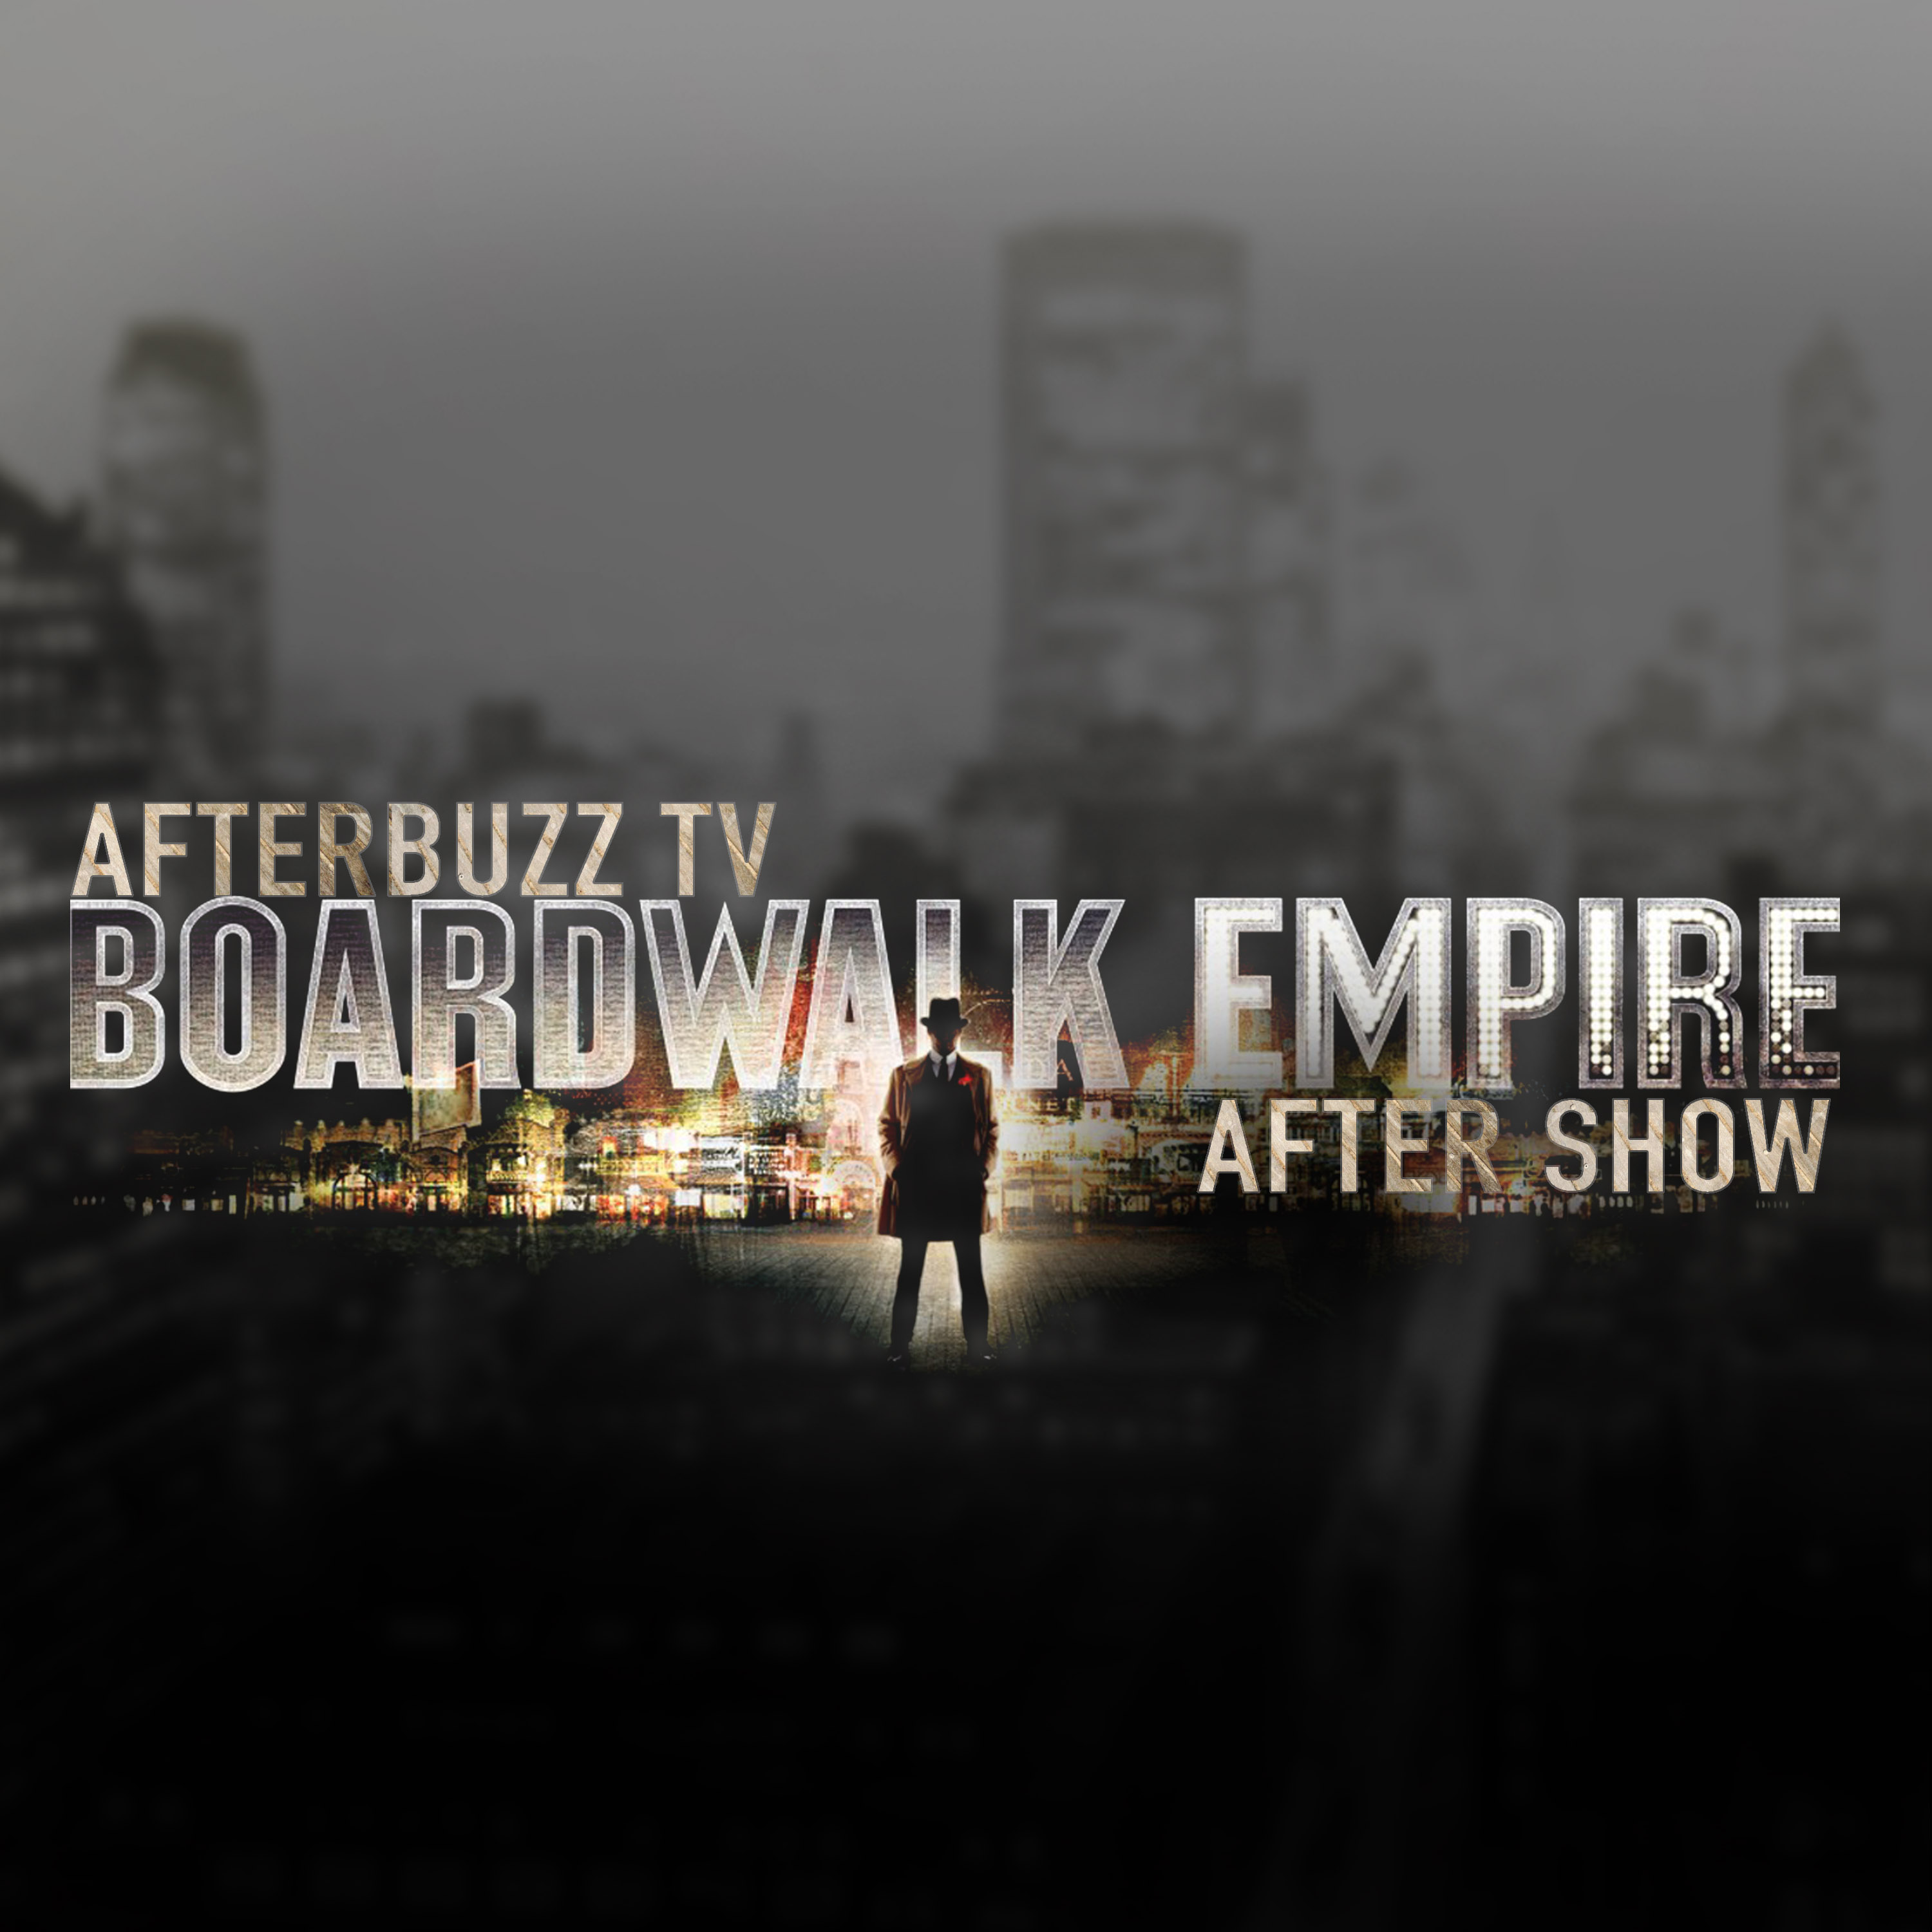 Boardwalk Empire After Show